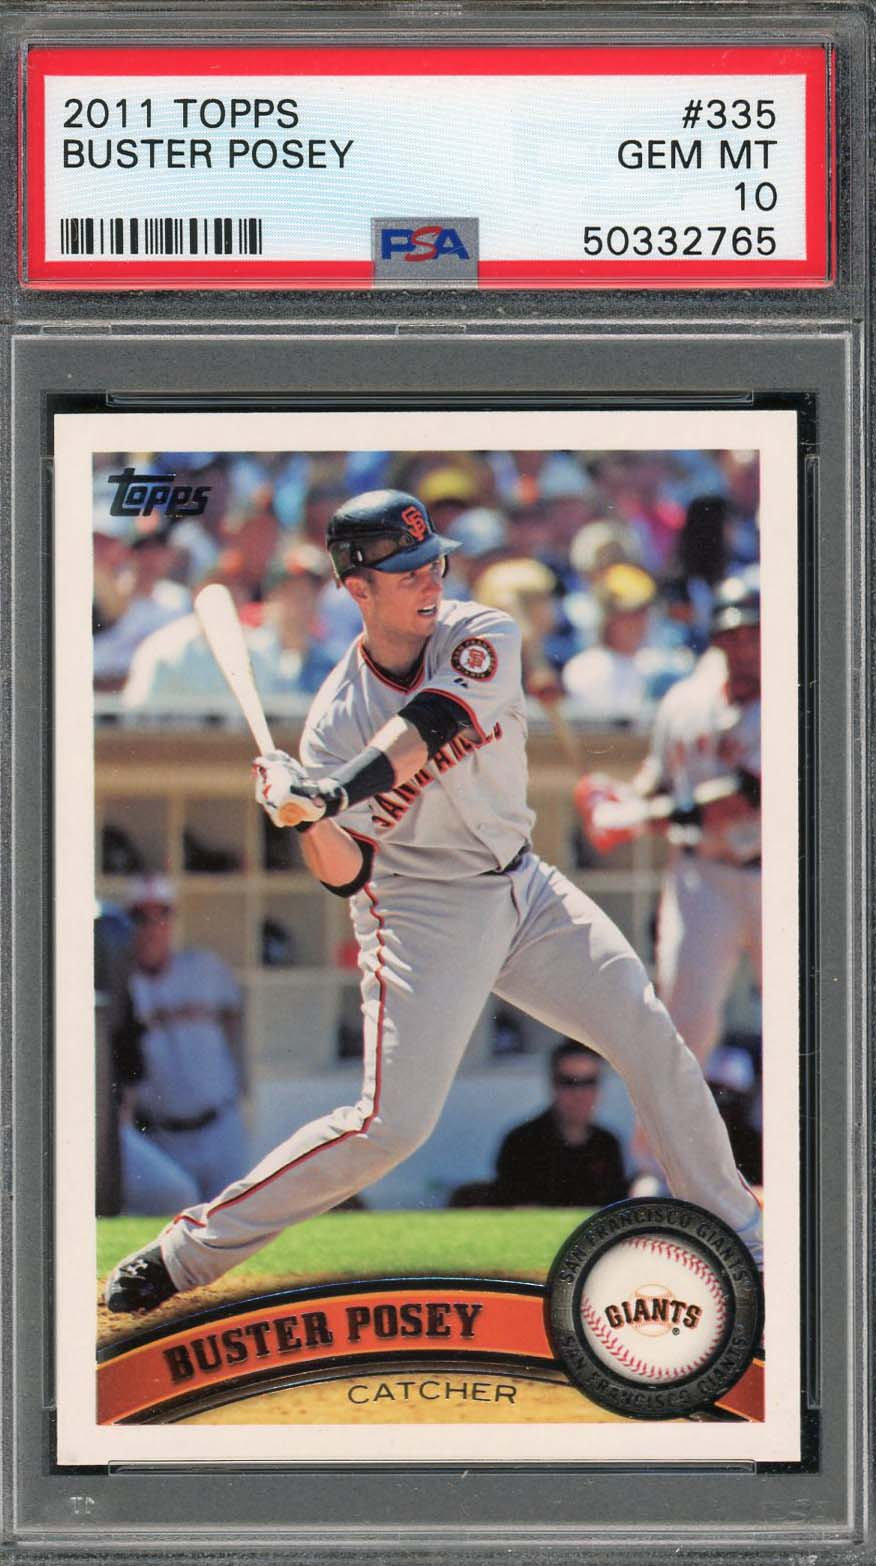 Buster Posey San Francisco Giants 2011 Topps Baseball Card #335 Graded PSA 10 GEM MINT-Powers Sports Memorabilia